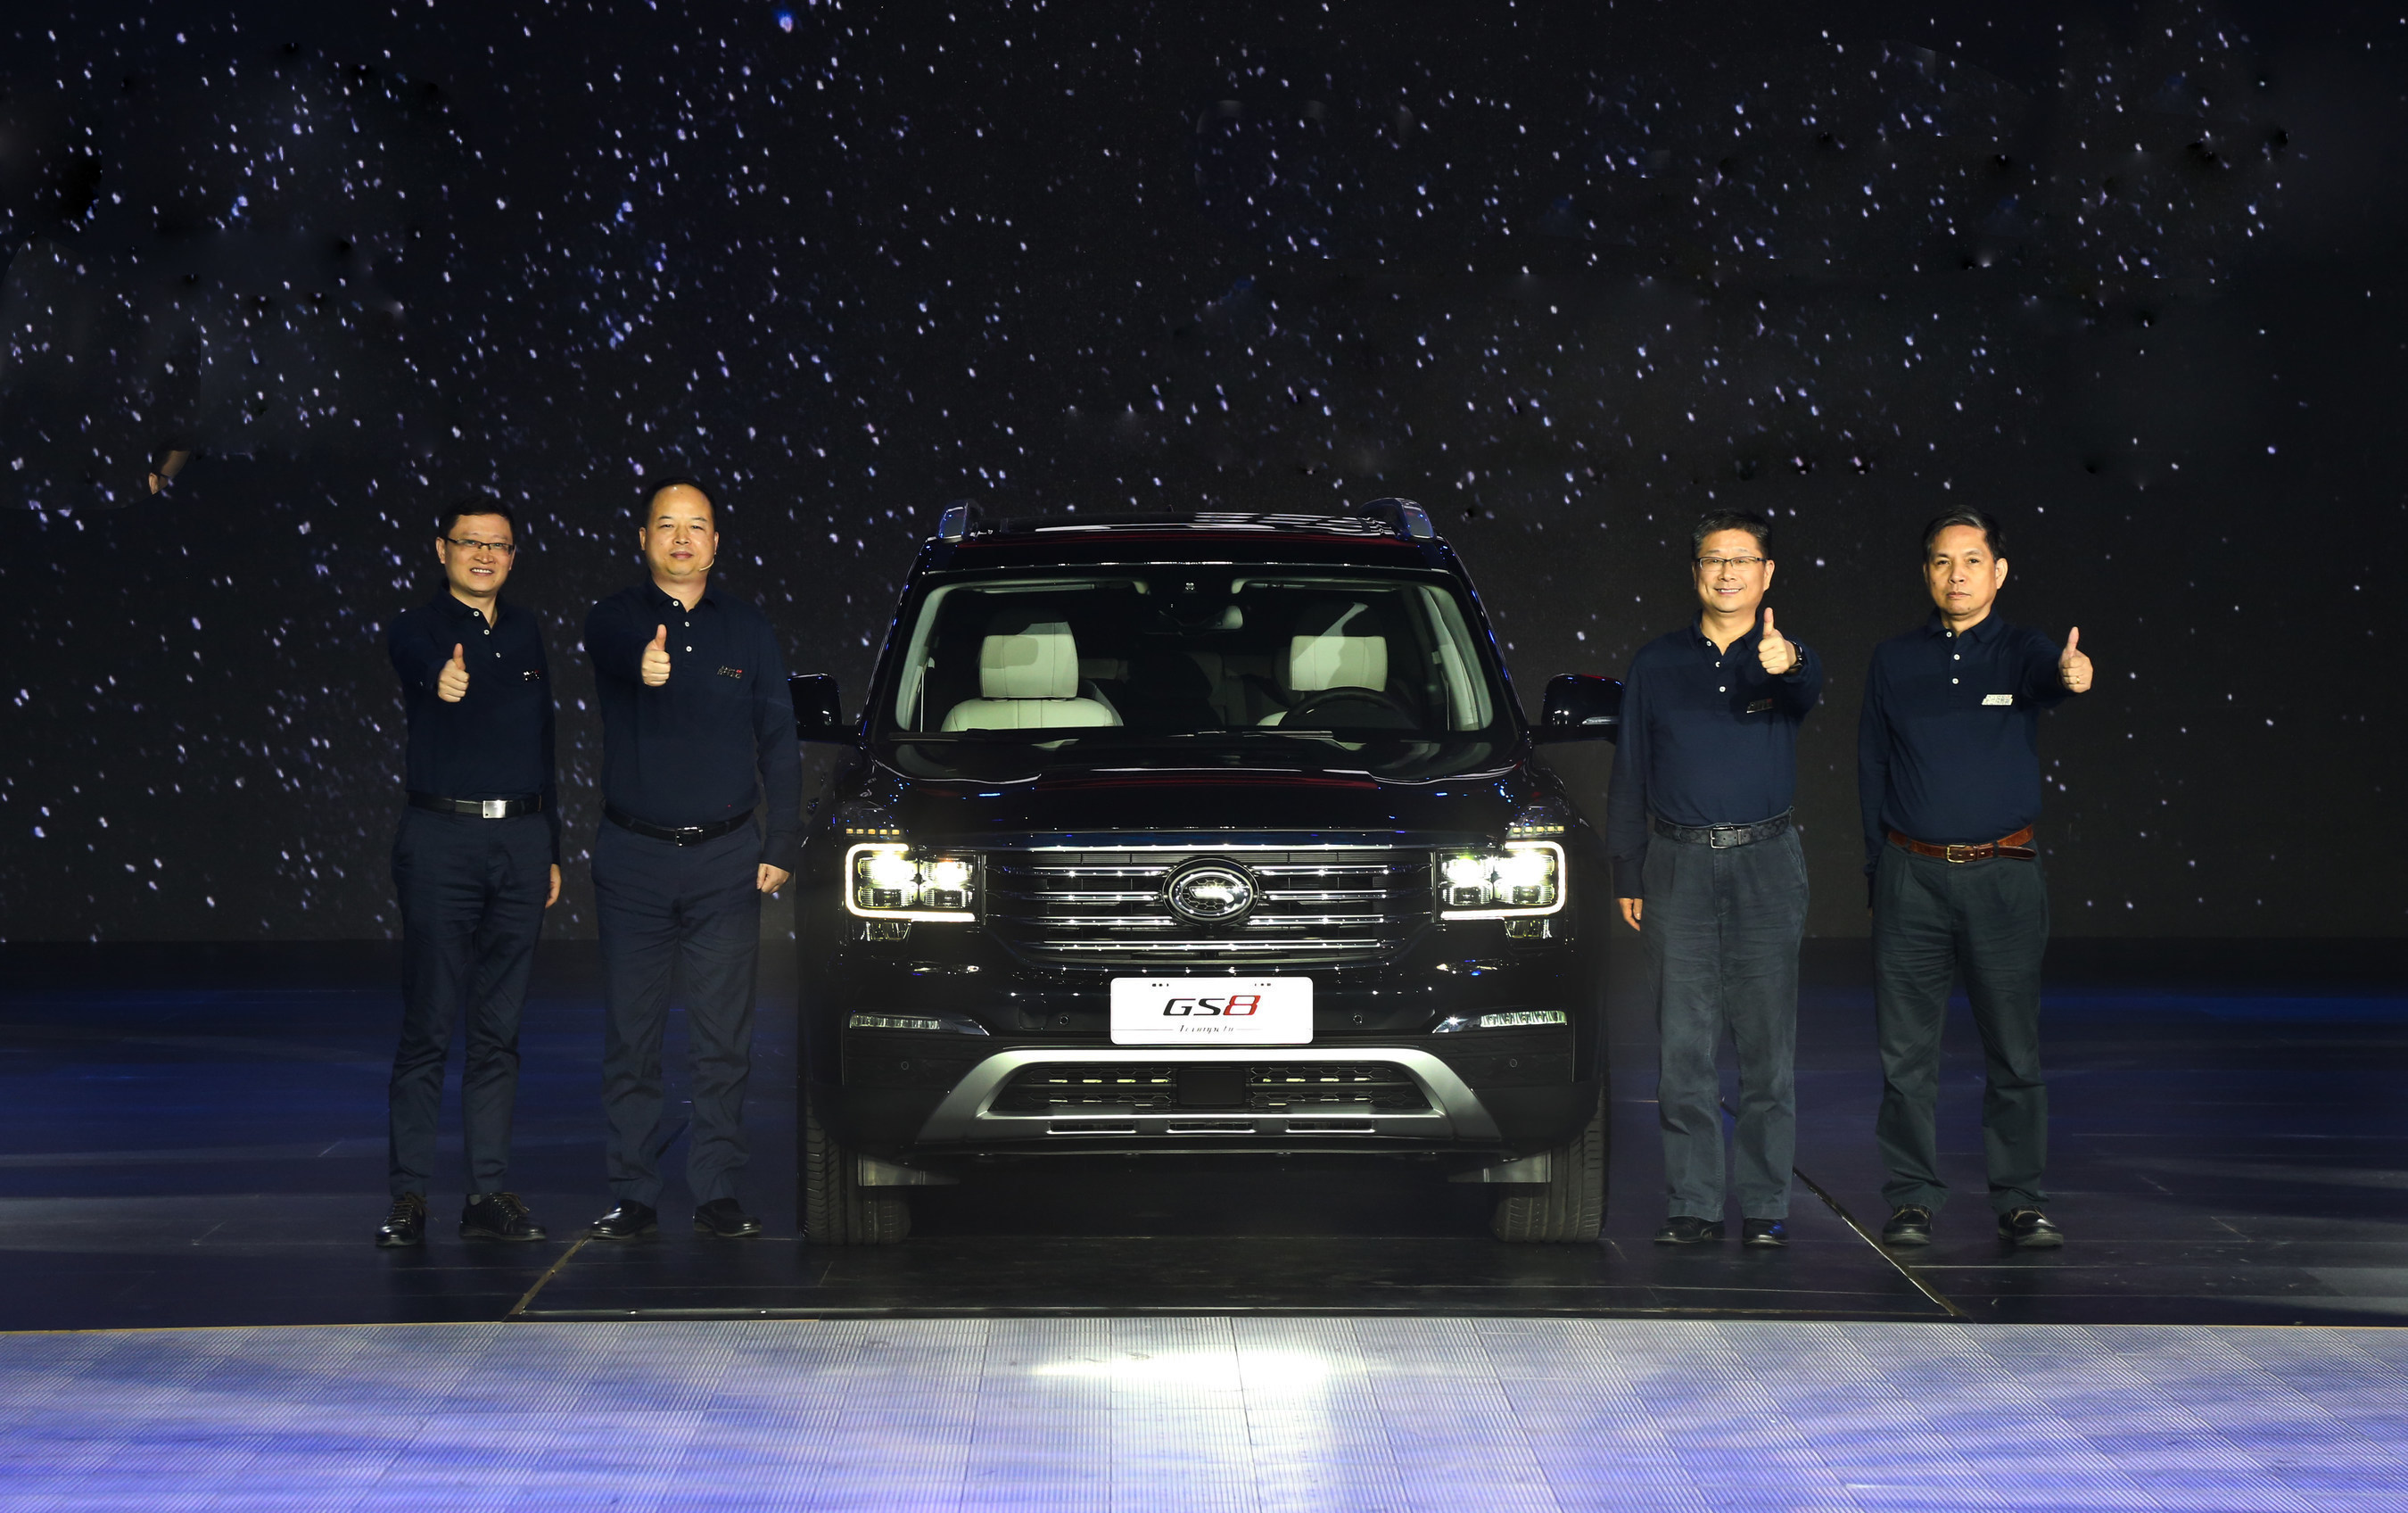 From left to right is: Vice general manager of GAC Motor Xiao Yong, general manager of GAC Motor Yu Jun, dean of GAC Engineering Wang Qiujing, deputy dean of GAC Engineering Chen Shanghua